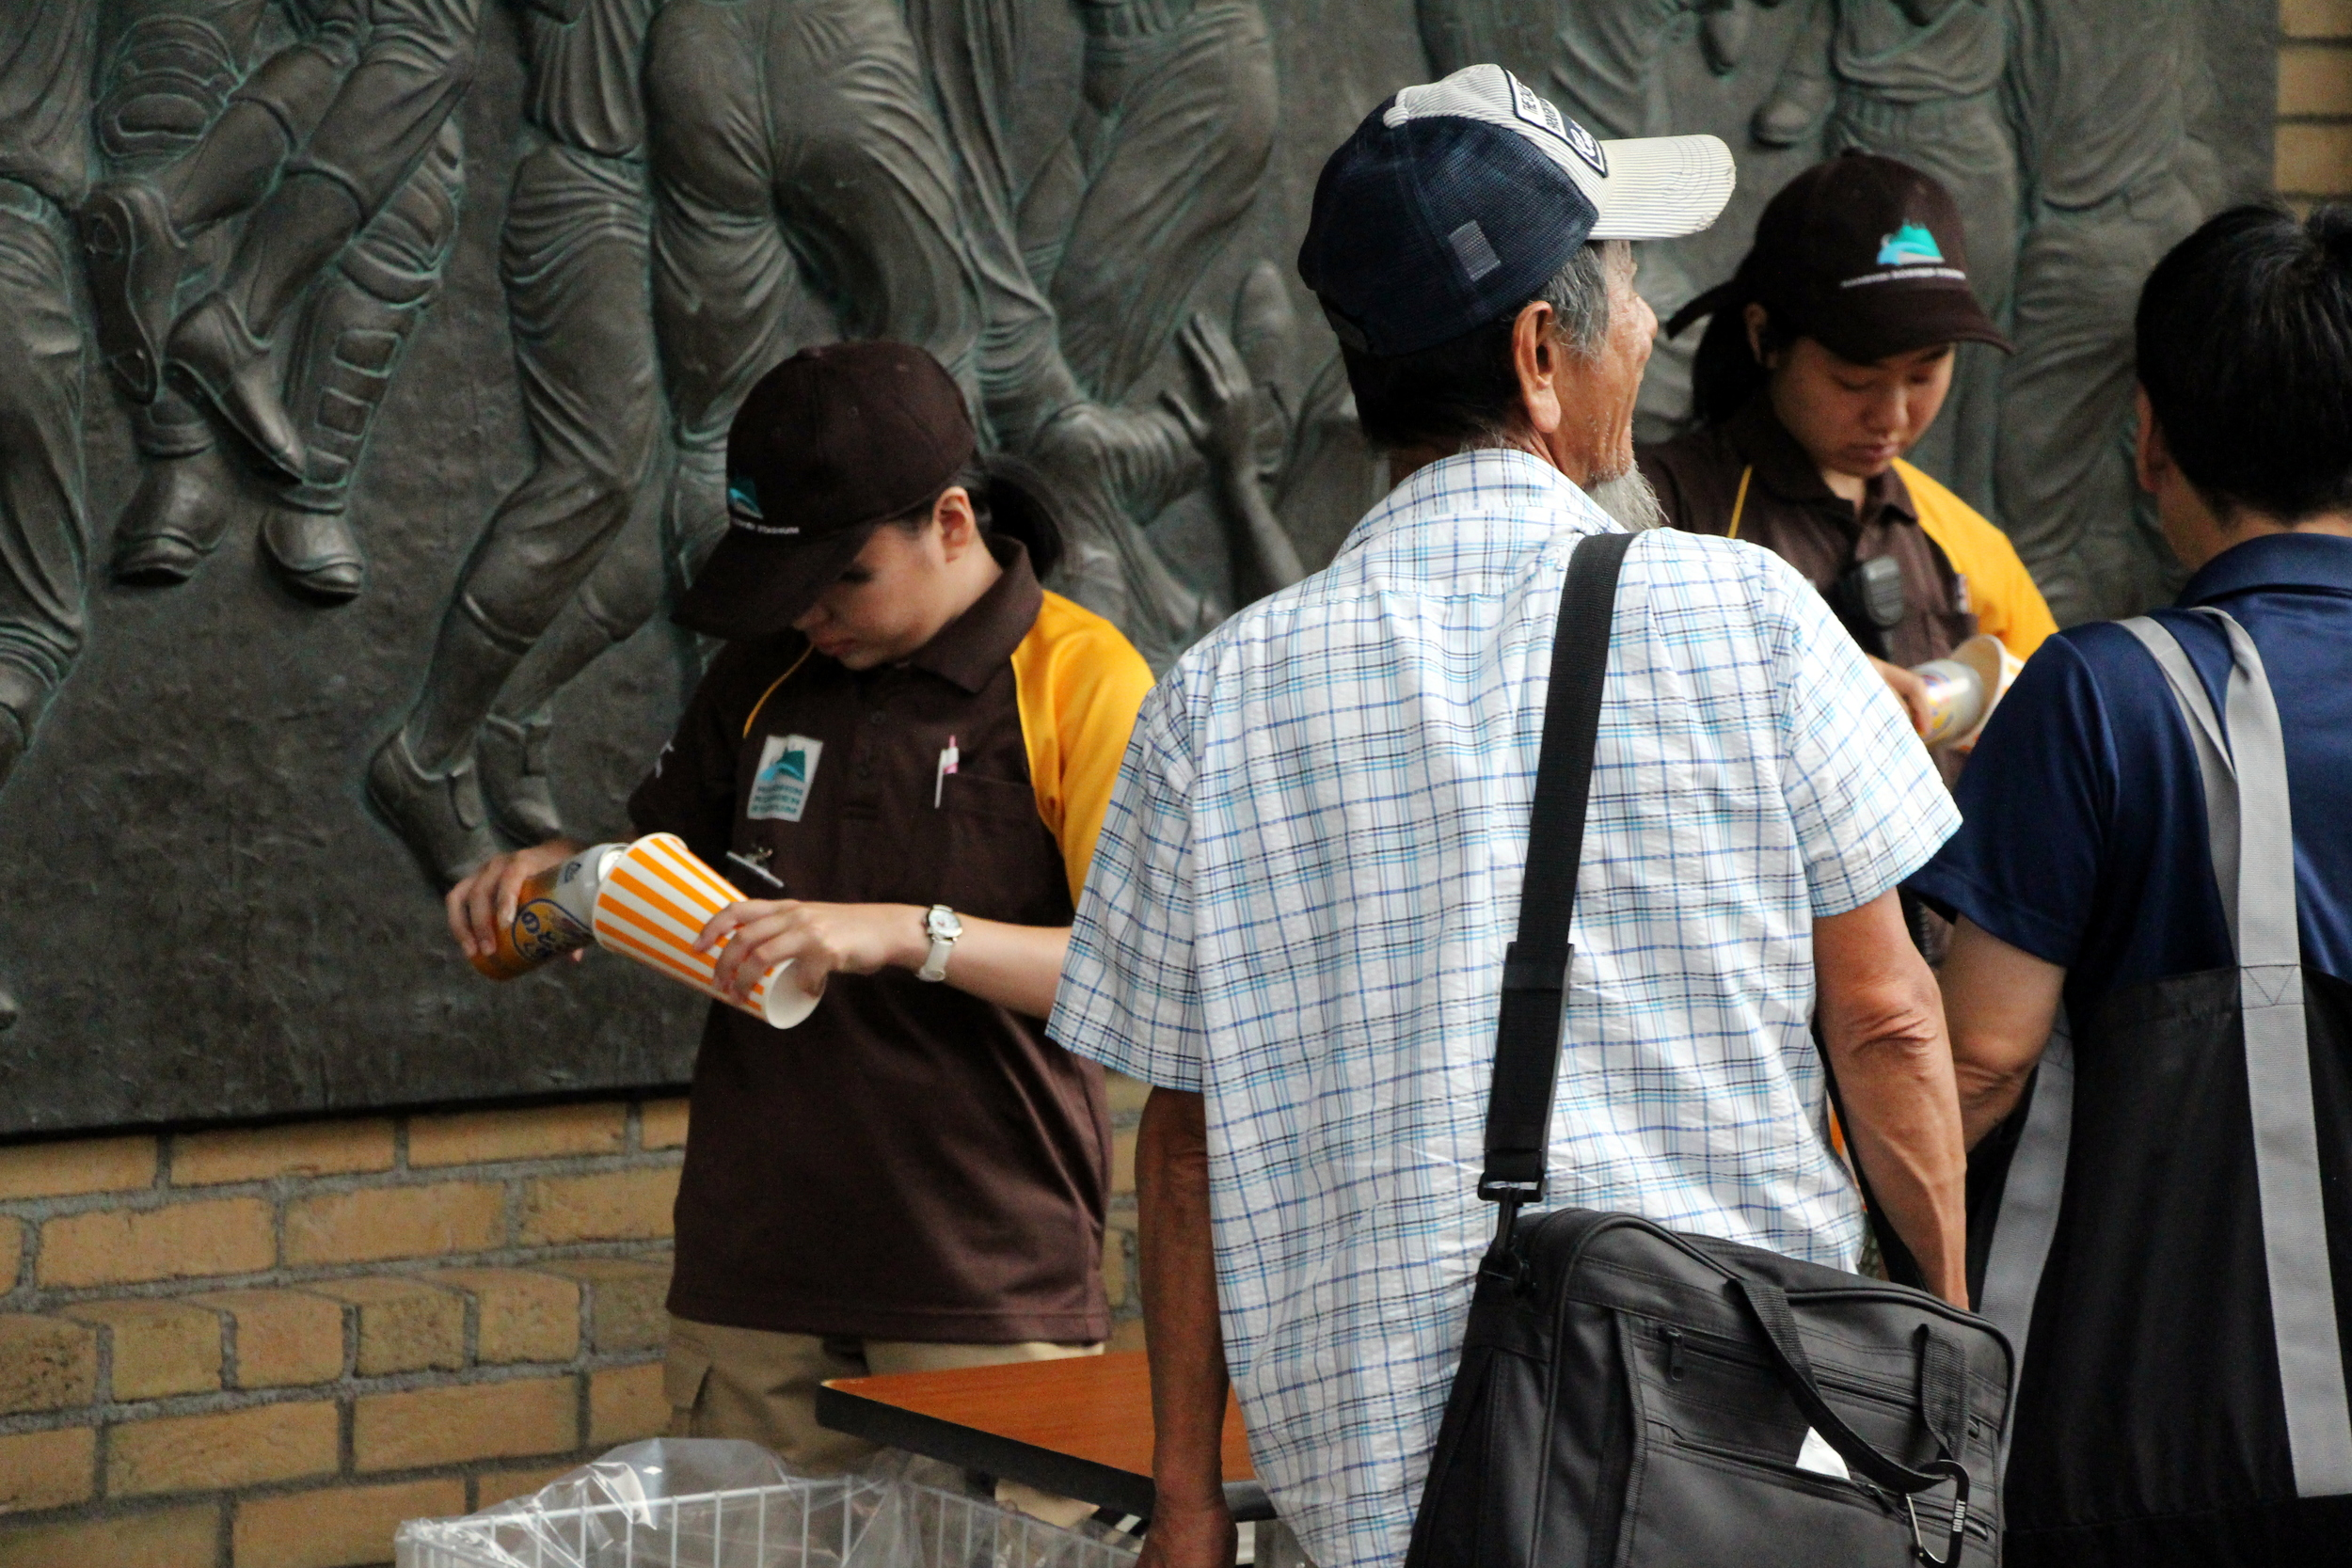 A gate agent at Hanshin Koshien Stadium pours a full tallboy can of beer into a cup for a Tiger's fan before he enters the park.